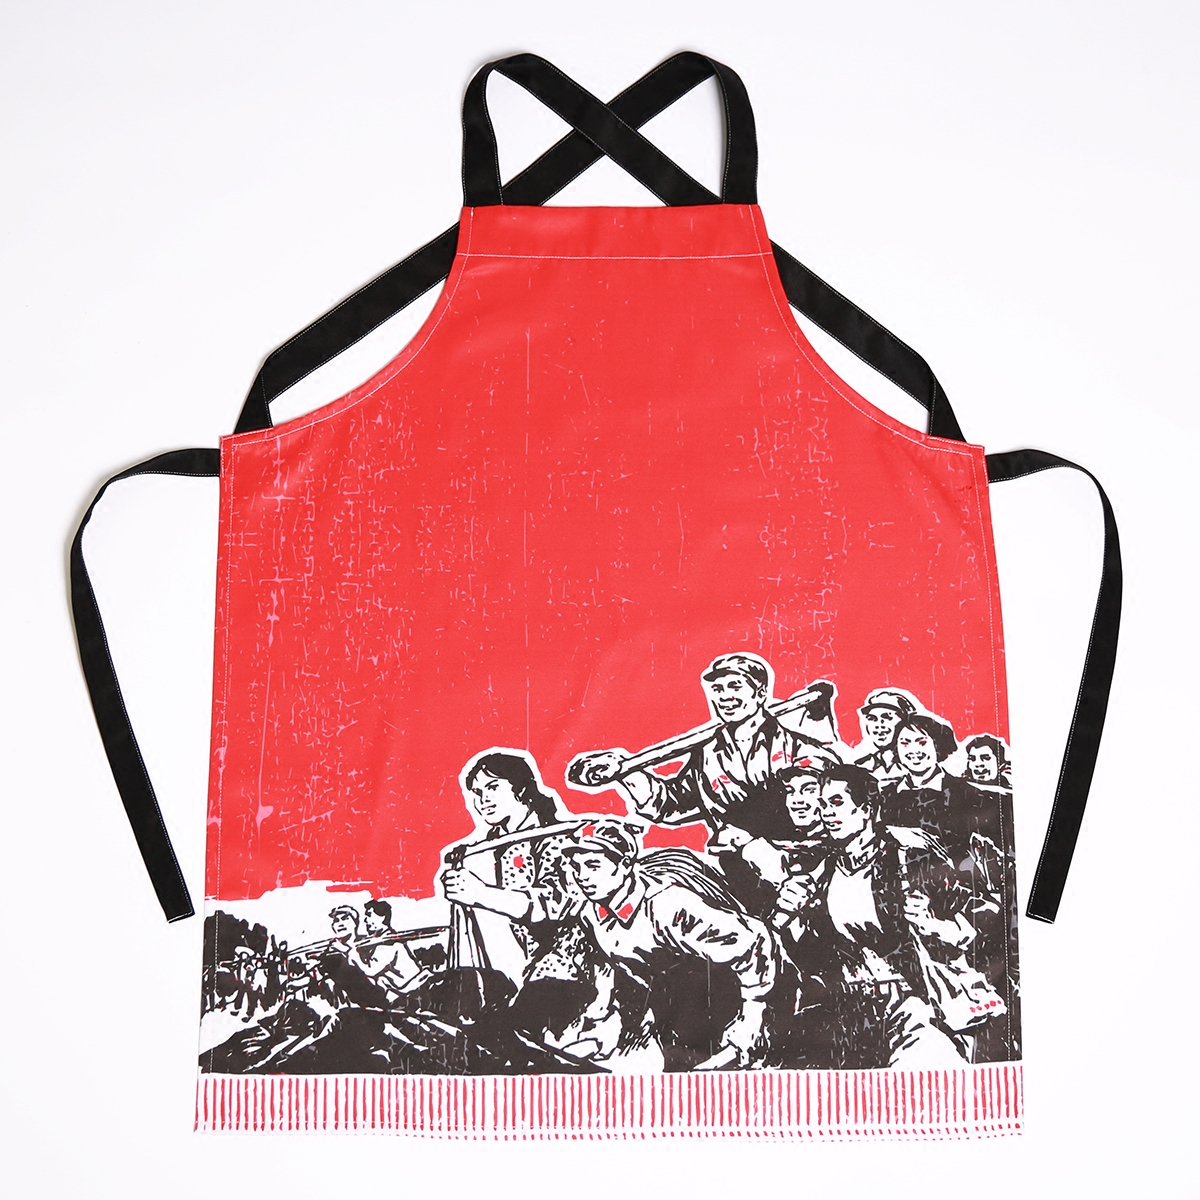 Chinese Vintage Style Waterproof Printing Kitchens Restaurants Sleeveless Aprons Uniforms Custom LOGO Polyester Cotton Blended